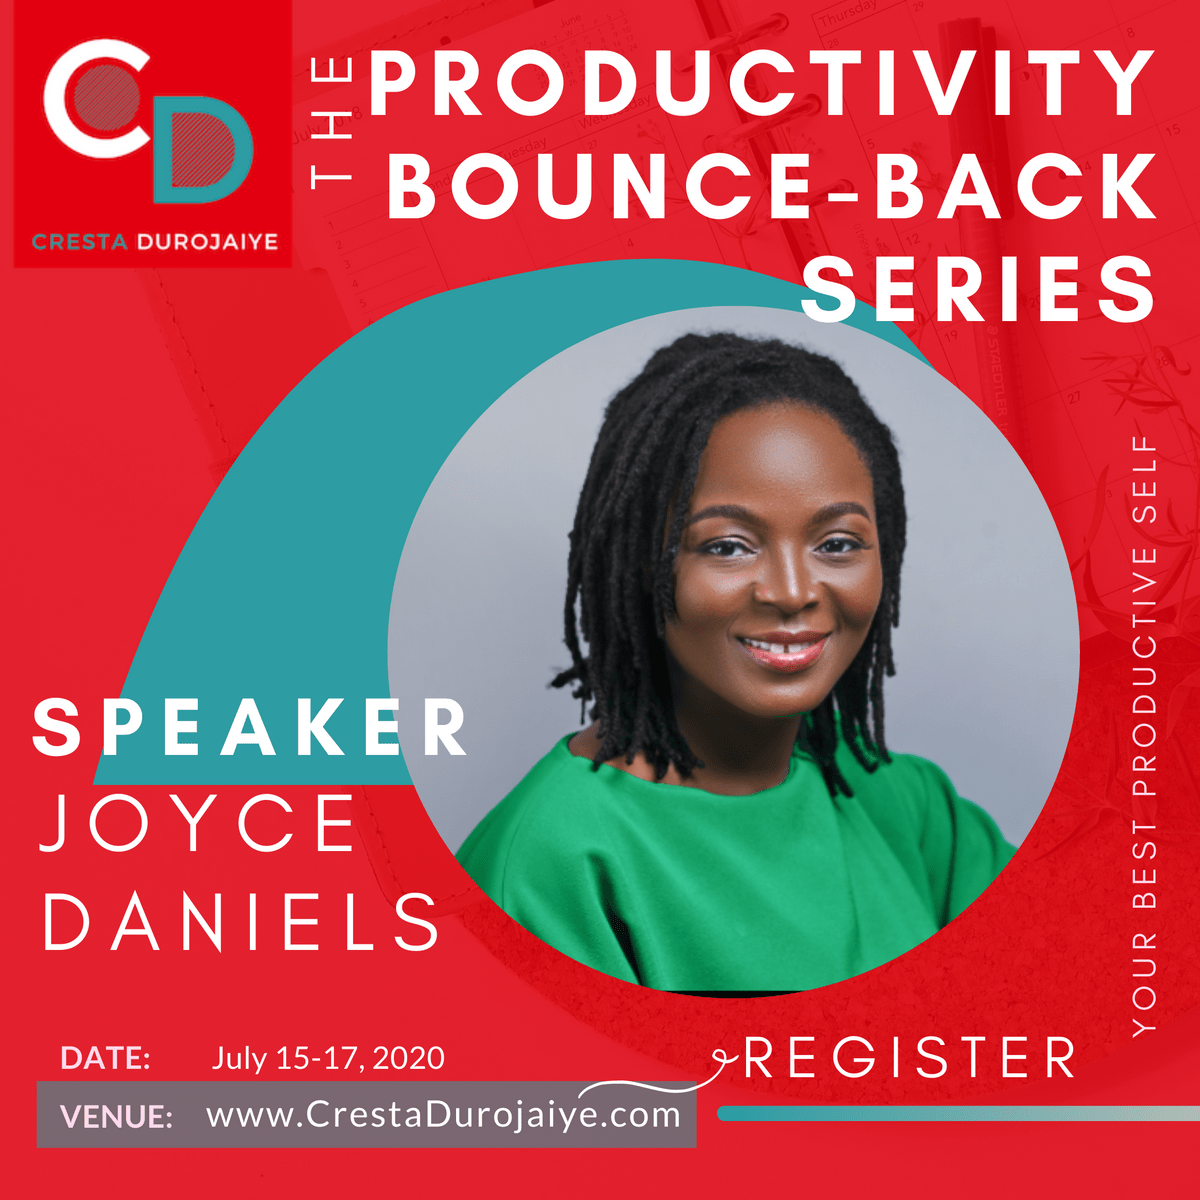 Joyce Daniels is speaking at The Productivity Bounce Back Series